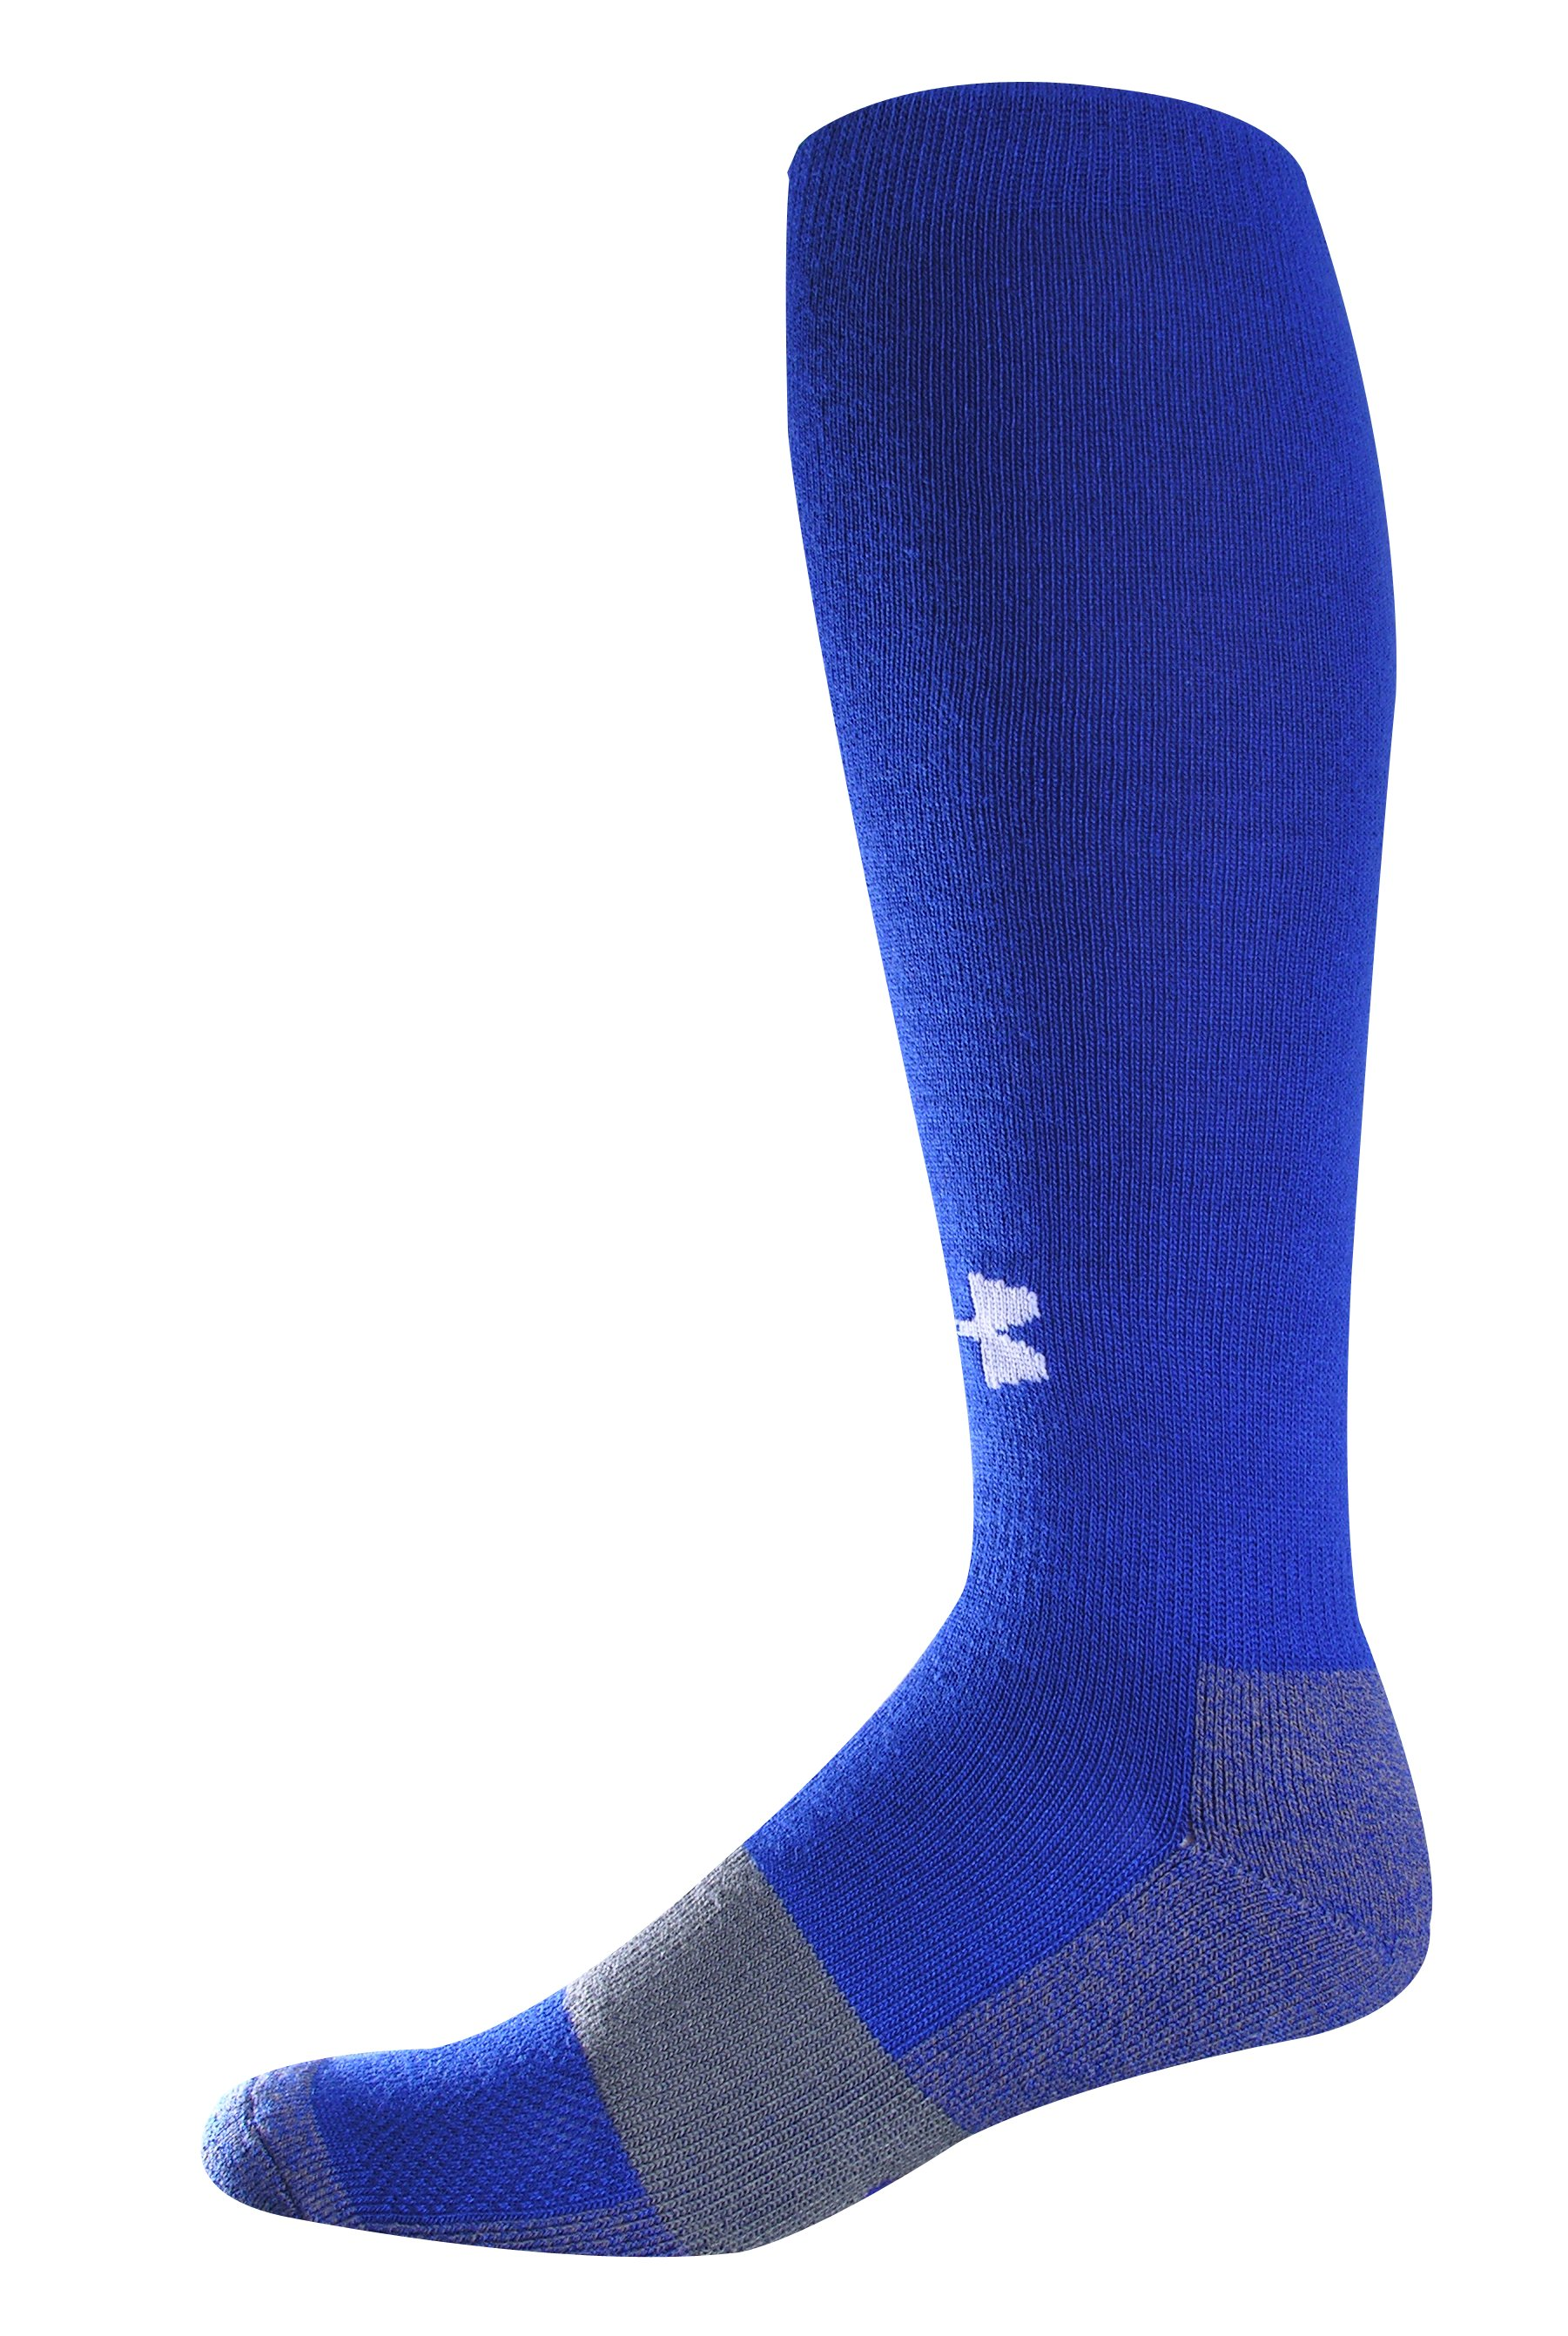 Men's Football Charged Cotton® OTC Socks, Royal